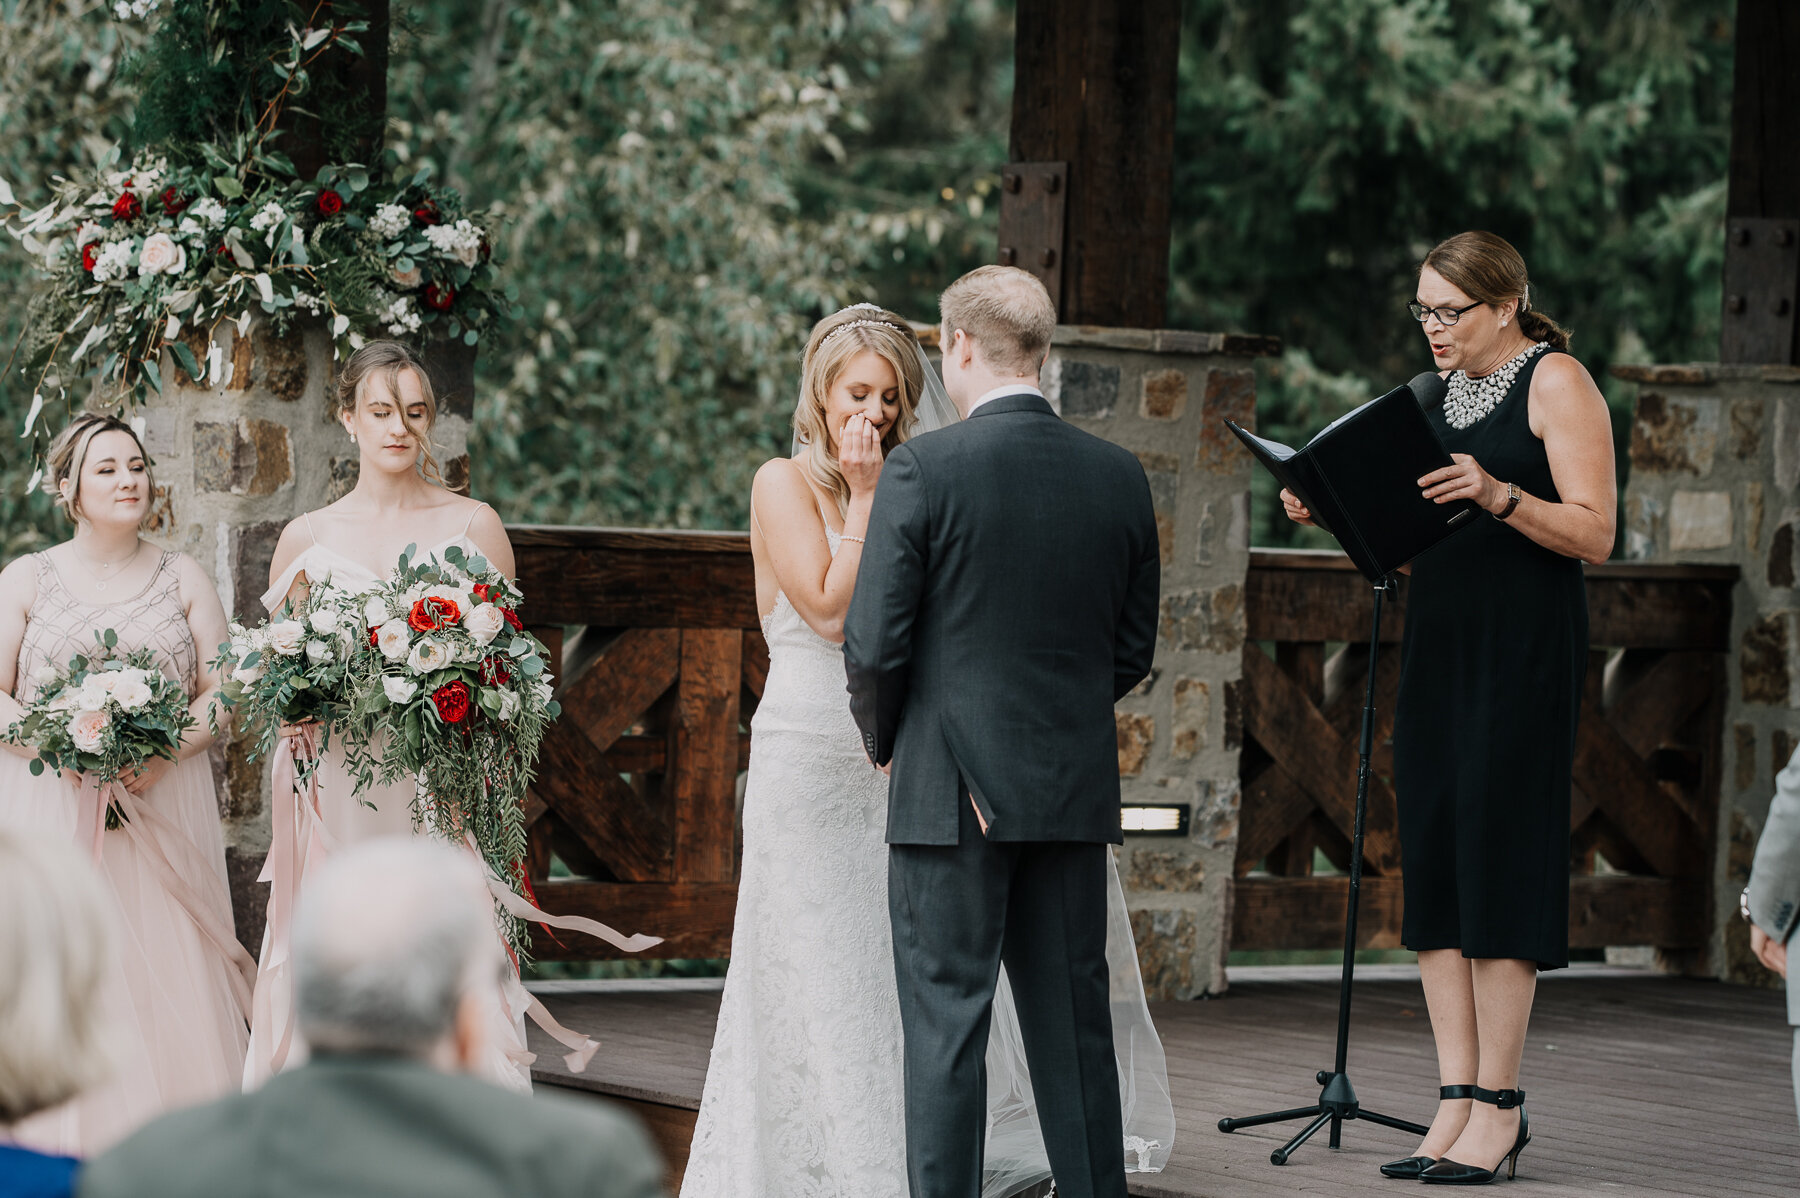 0817Swiftwater Cellars Wedding_Cle Elum Wedding_Montana Wedding Photographer_Kat & Kyle_September 15, 2018-1090.jpg